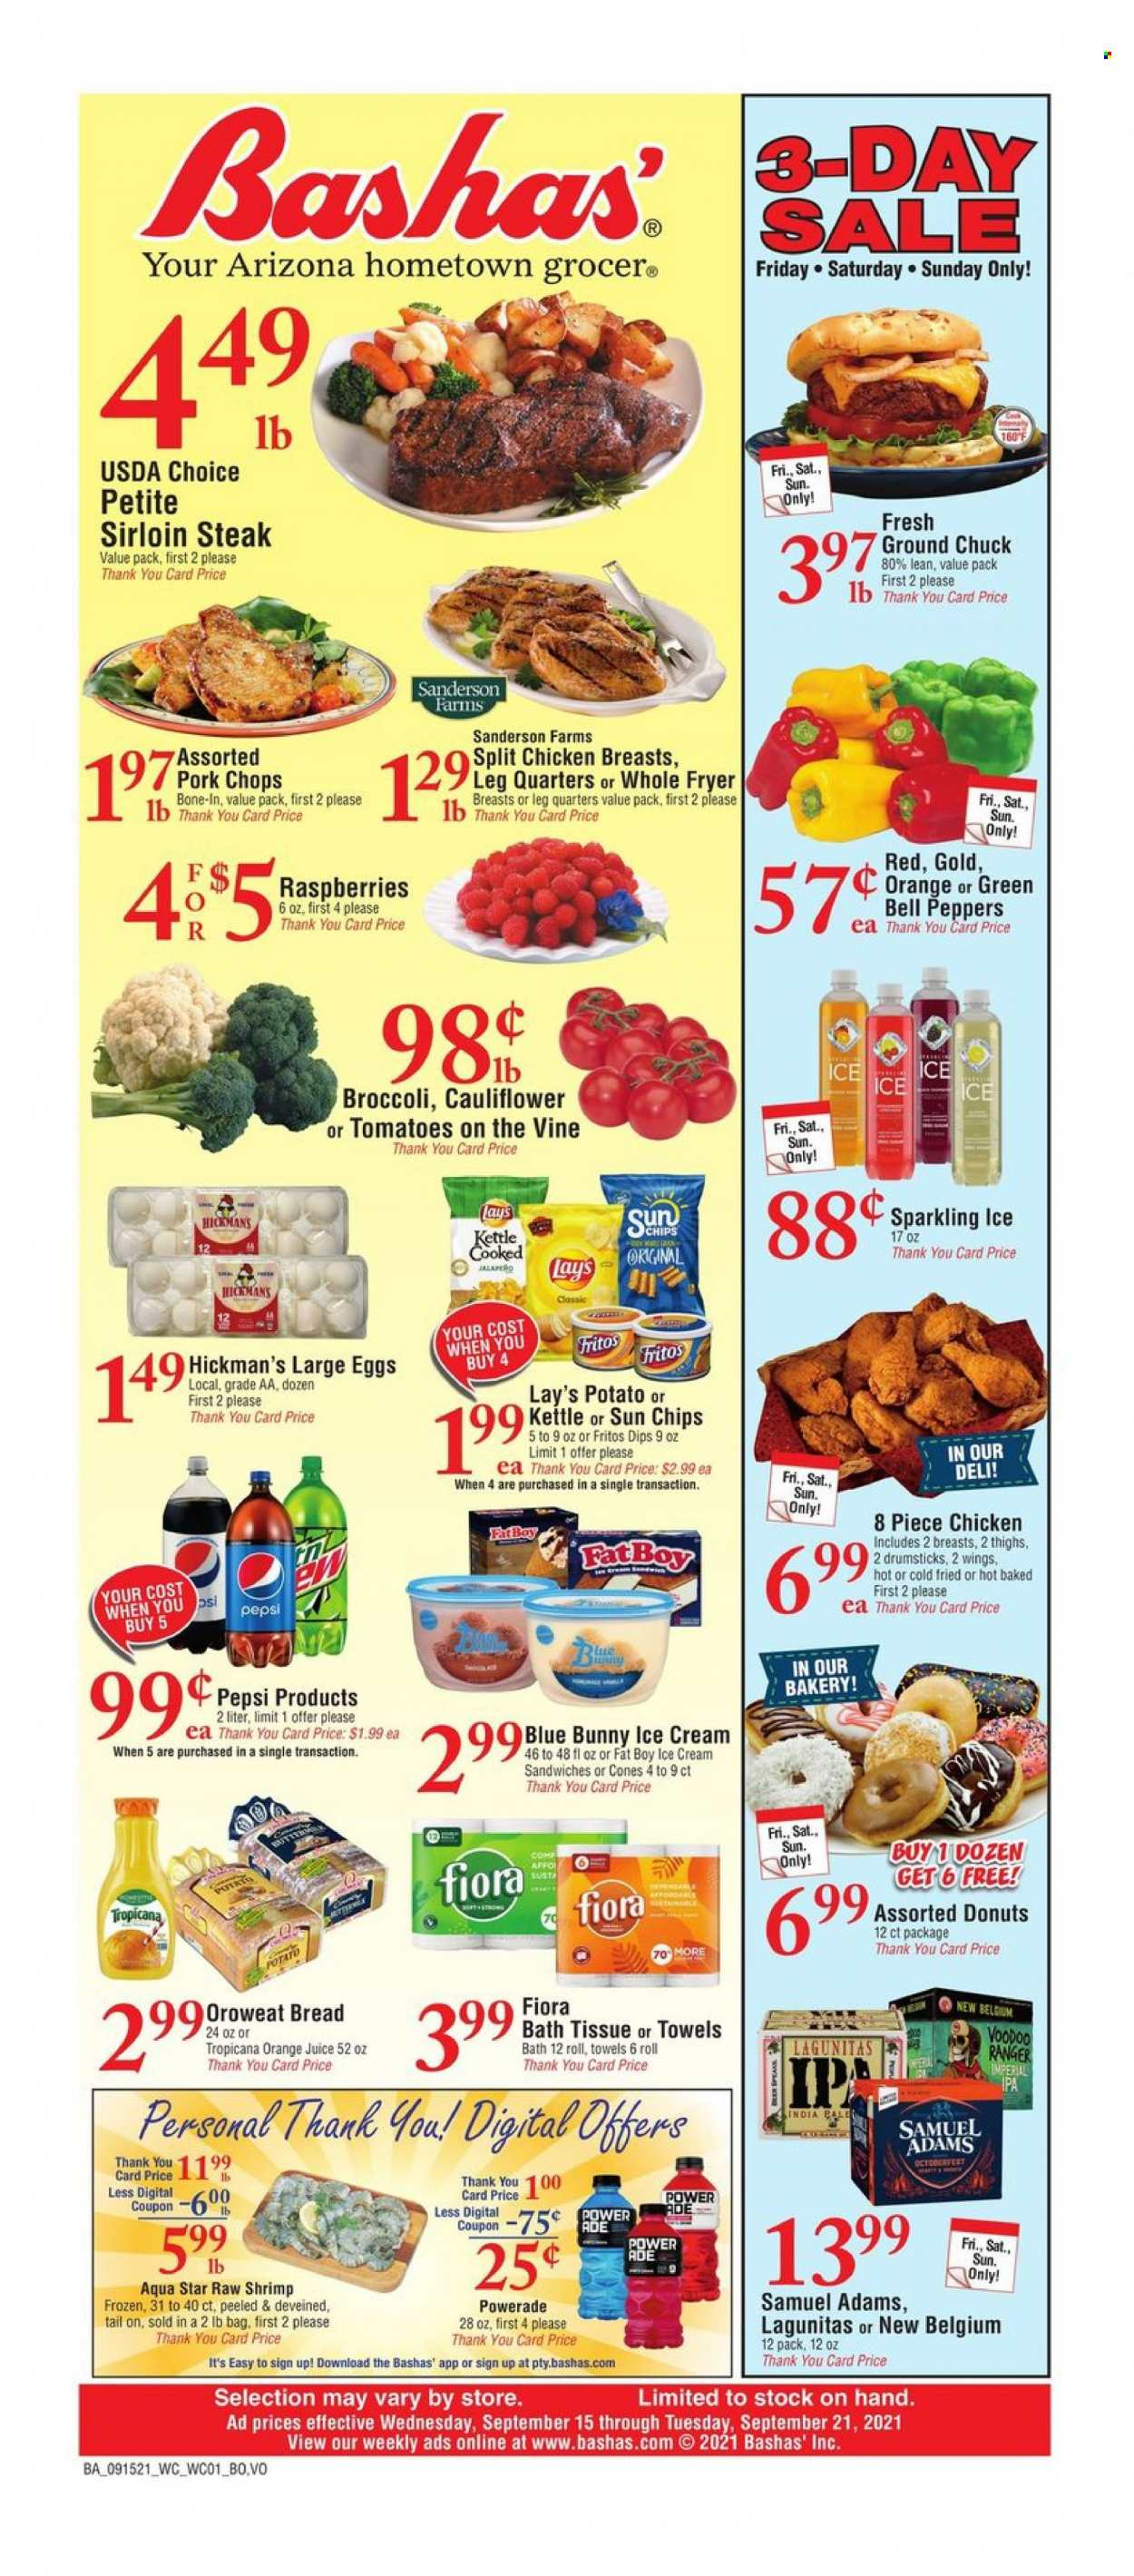 Bashas Ad from september 15 to 21 2021 - Page 1